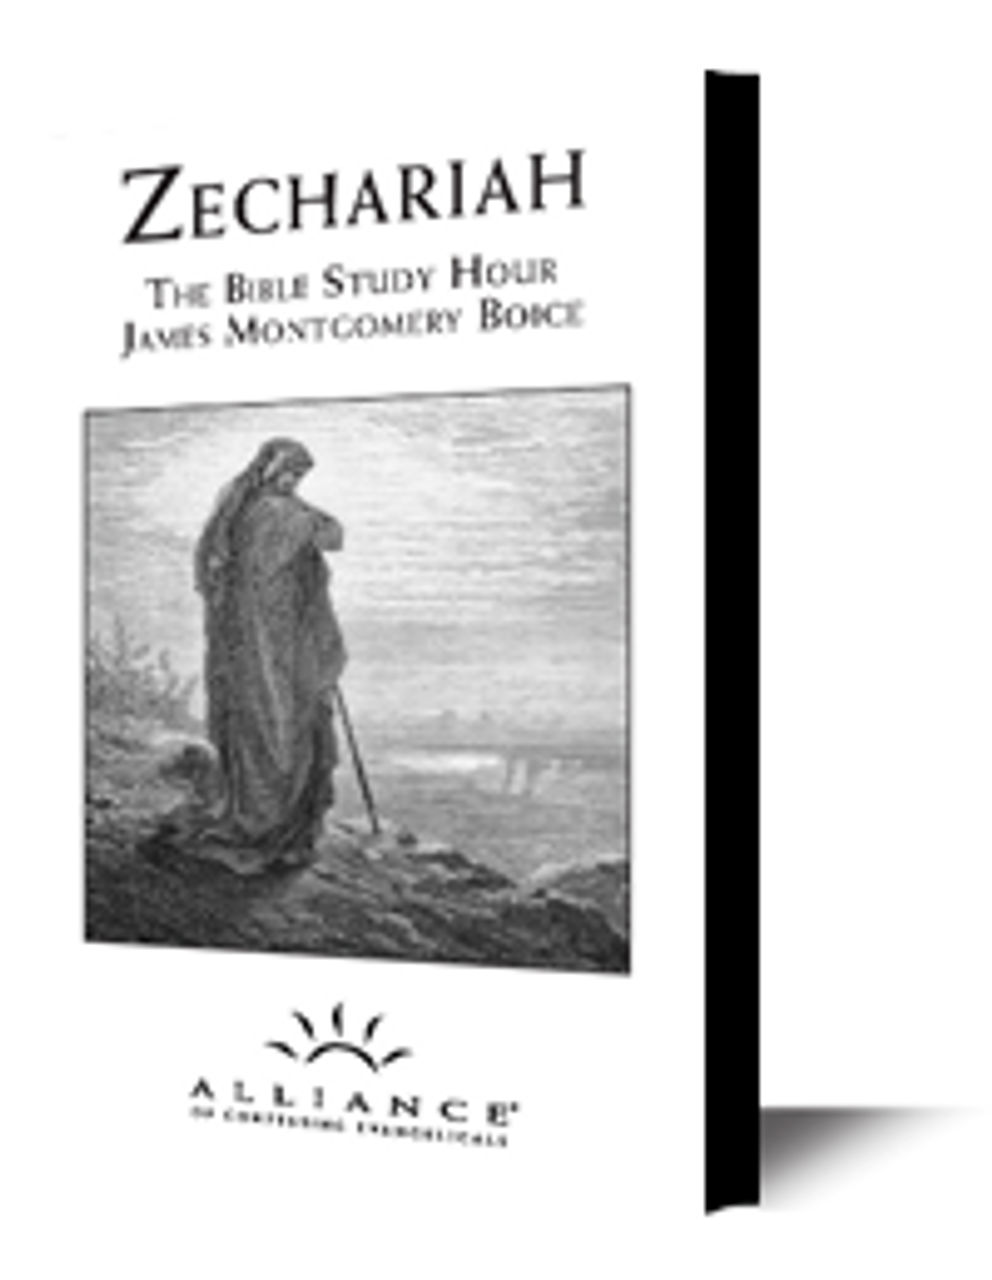 Zechariah (Boice)(mp3 Disc)